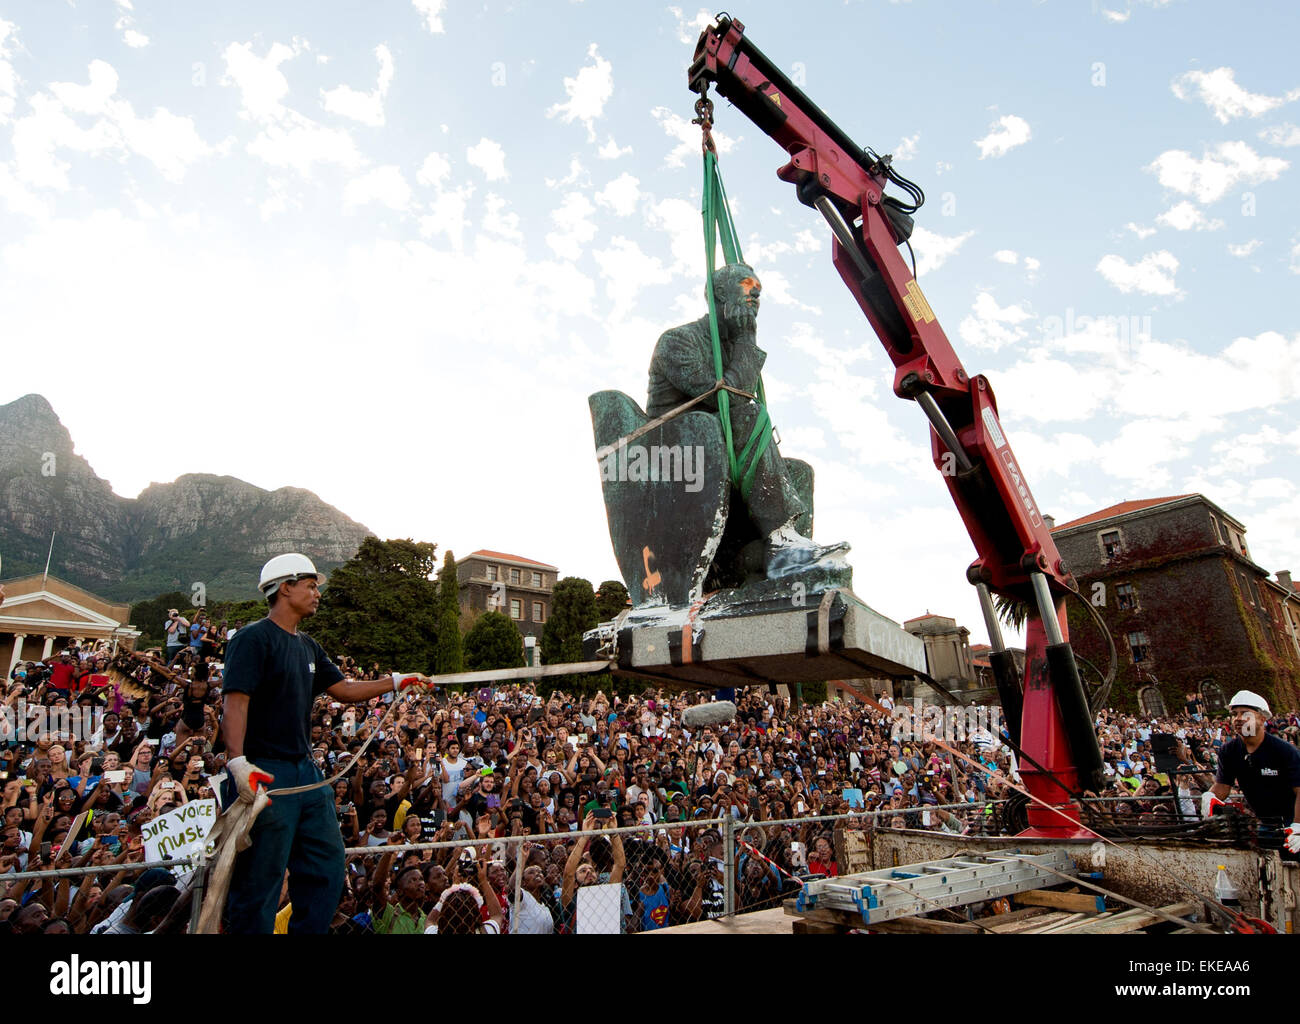 Removal of Cecil John Rhodes statue at the University of Cape Town campus. #FeesMustFall - Stock Image